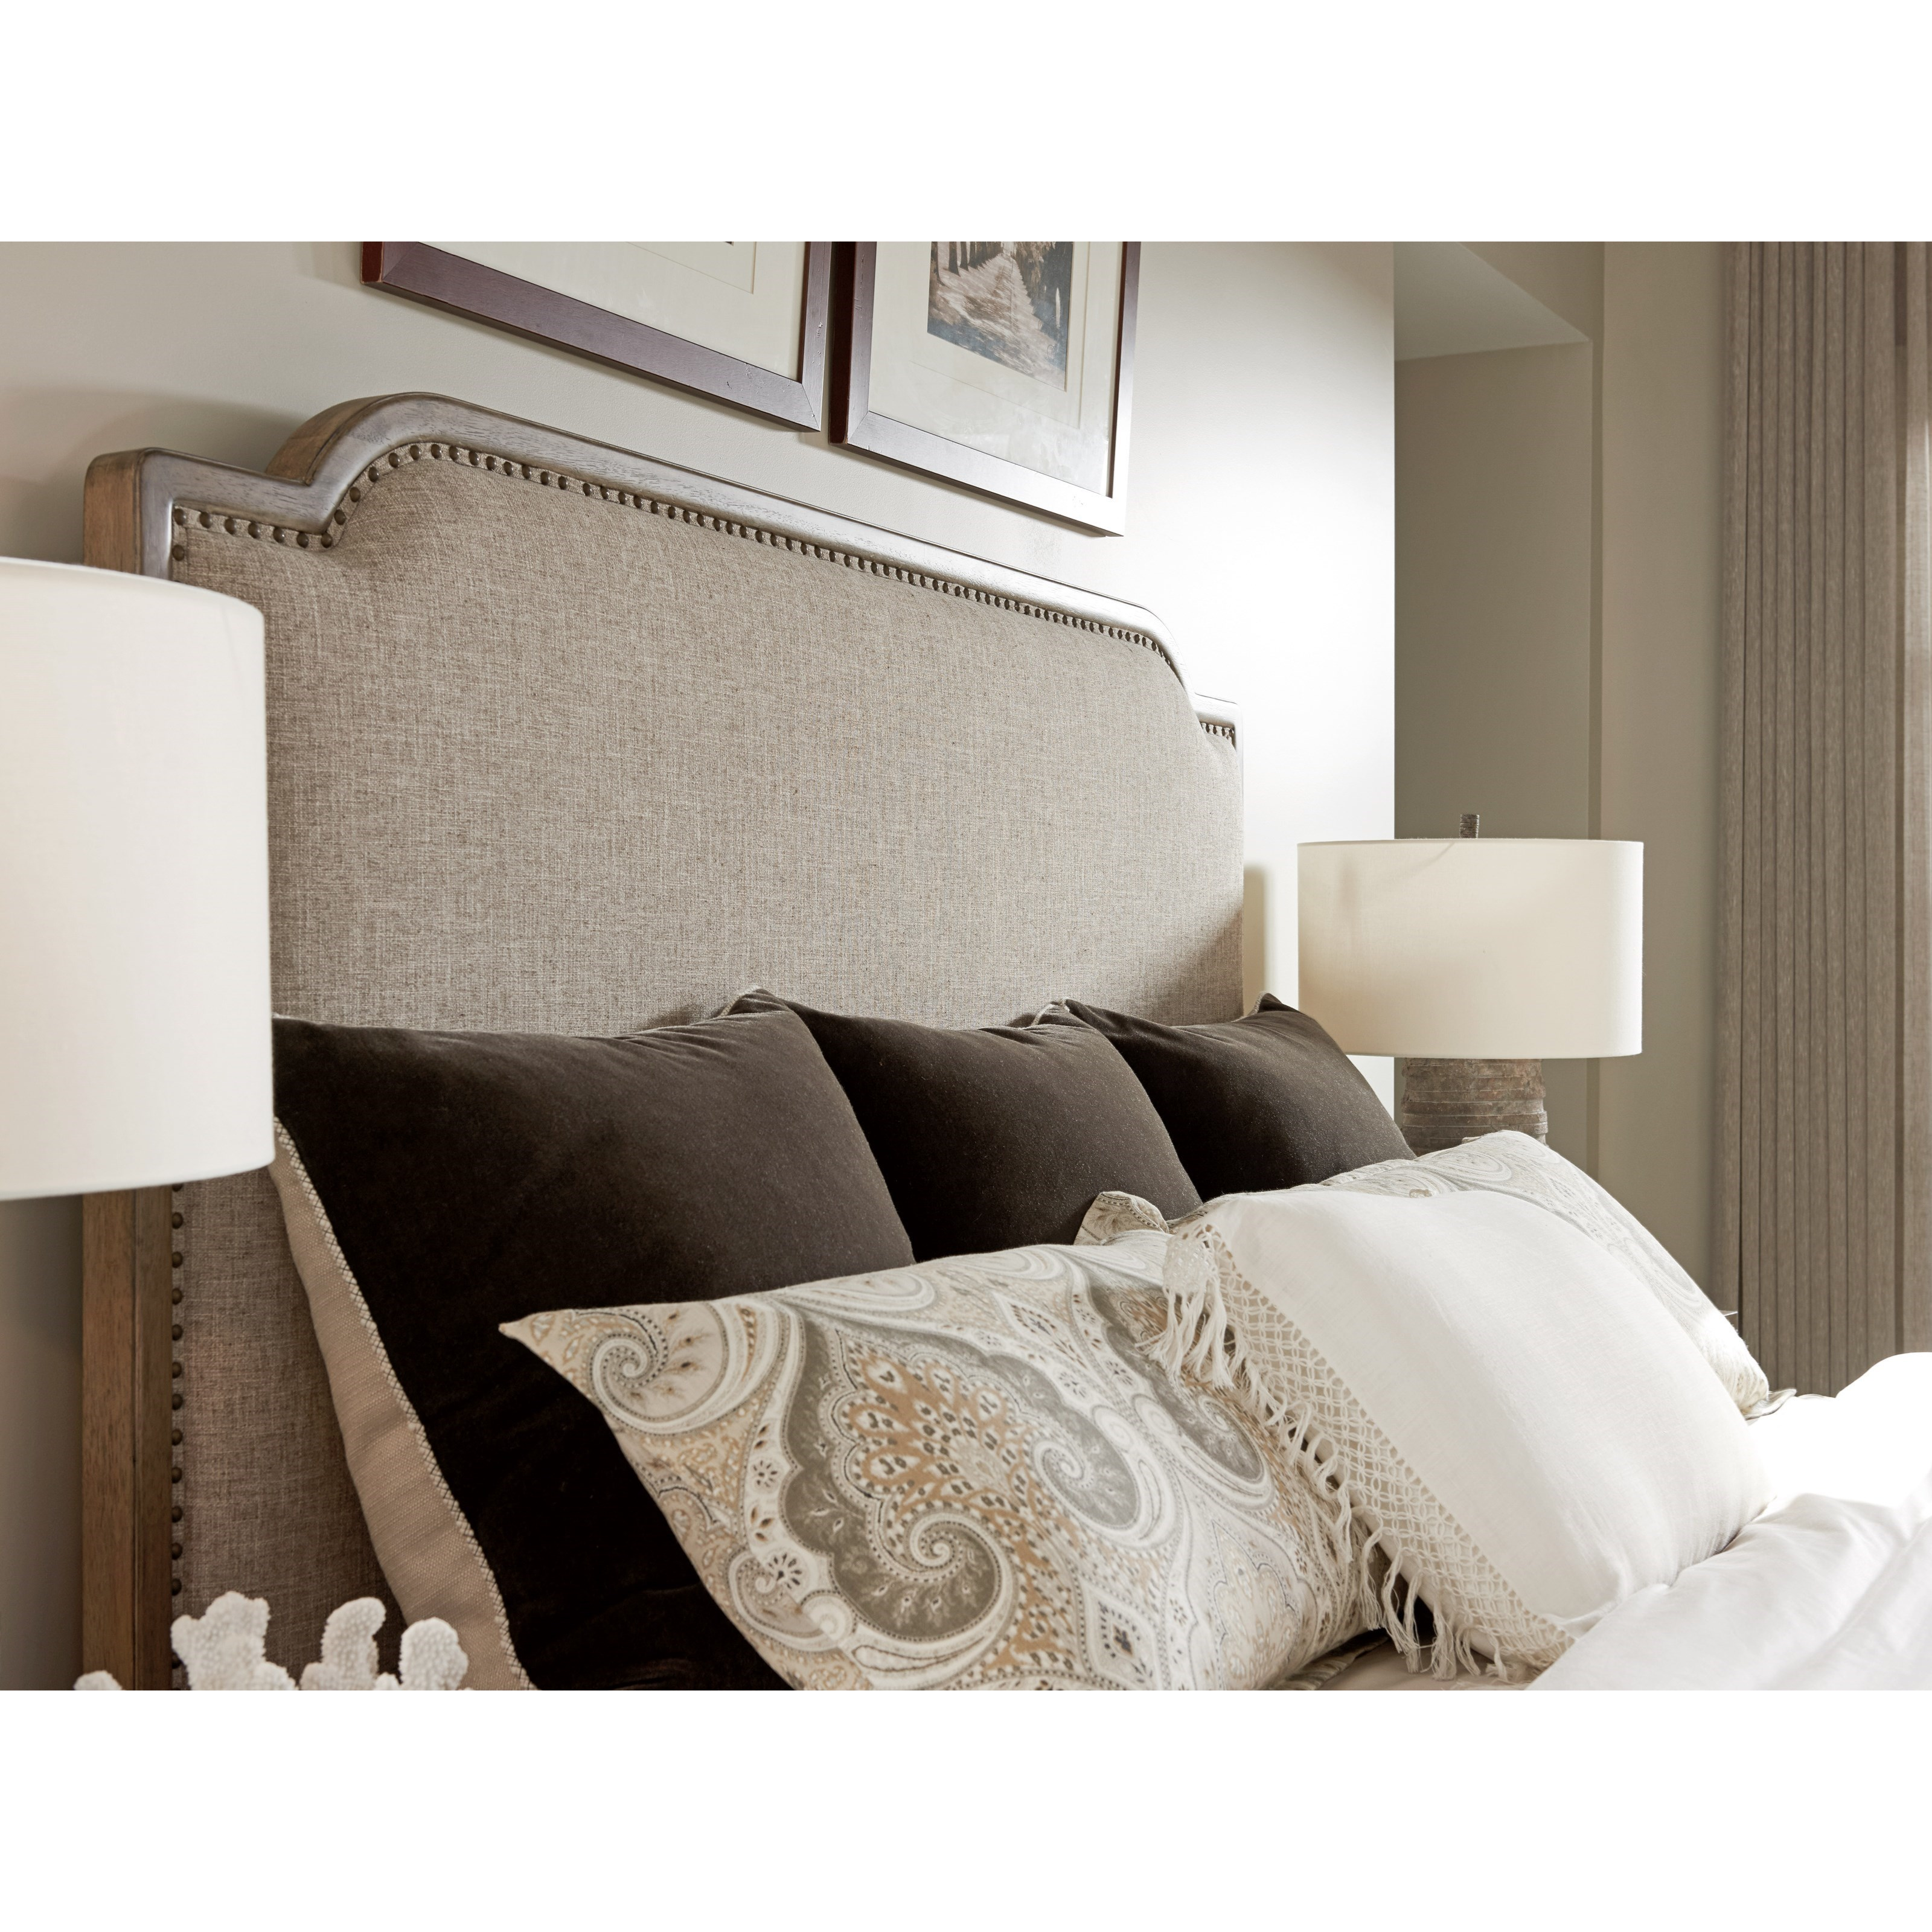 Cypress Point Stone Harbour Upholstered Headboard 6/6 King by Tommy Bahama Home at Baer's Furniture